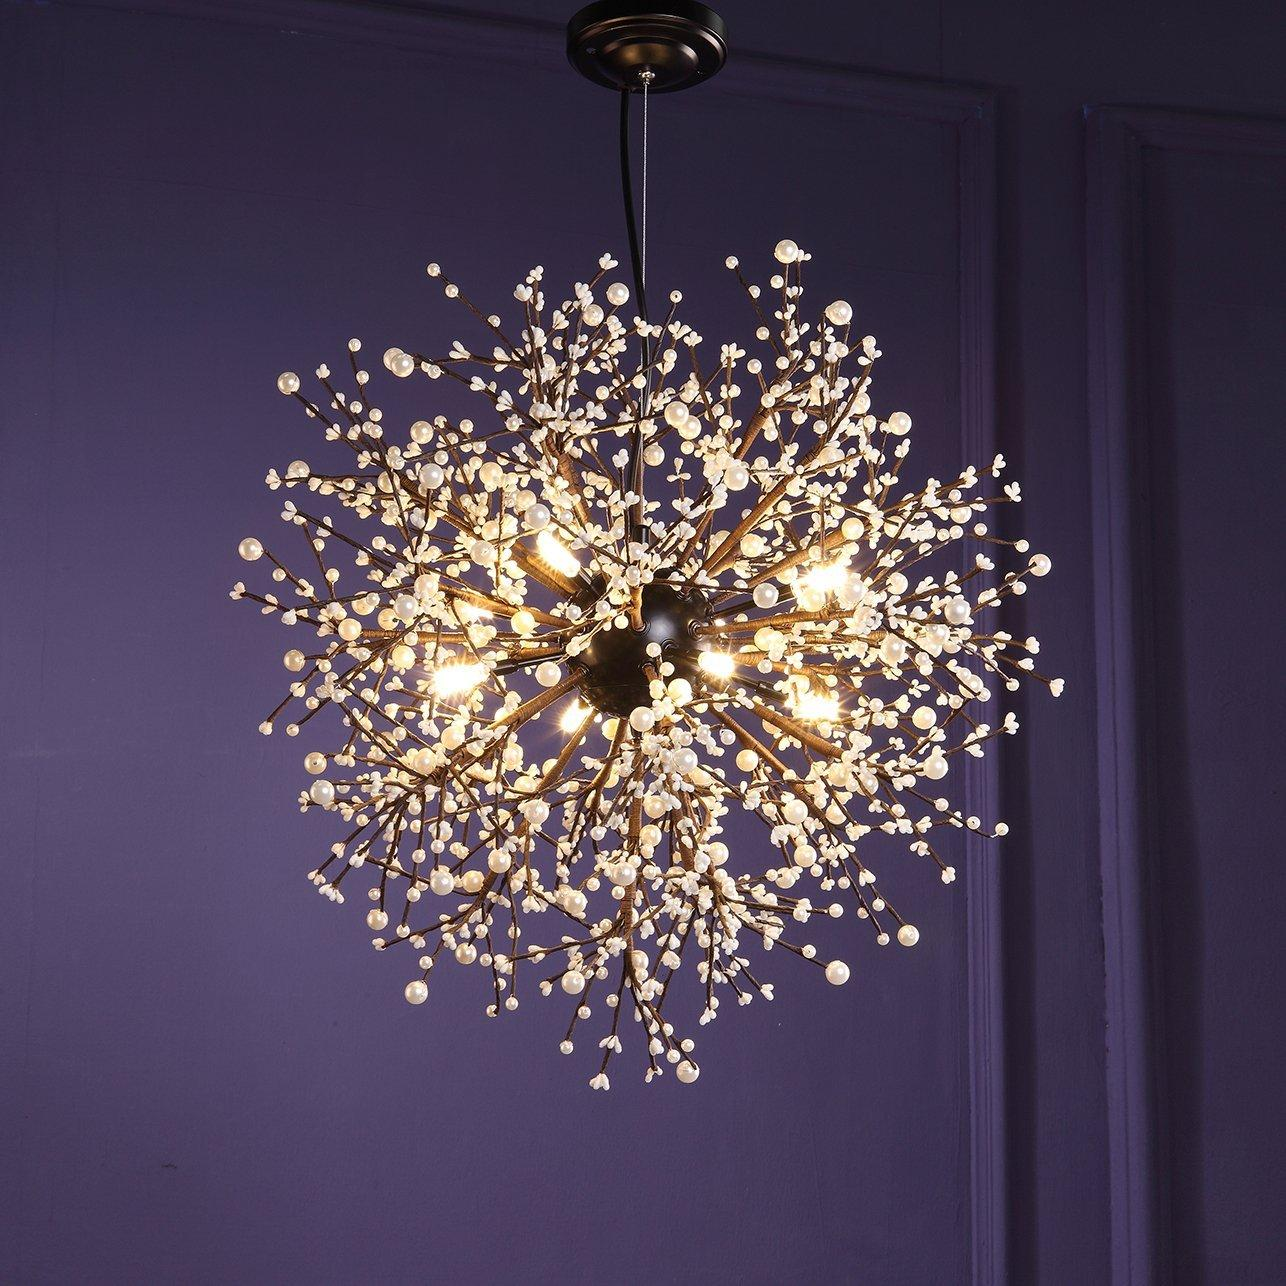 Modern Chandeliers Firework Led Vintage Wrought Iron Chandelier ...